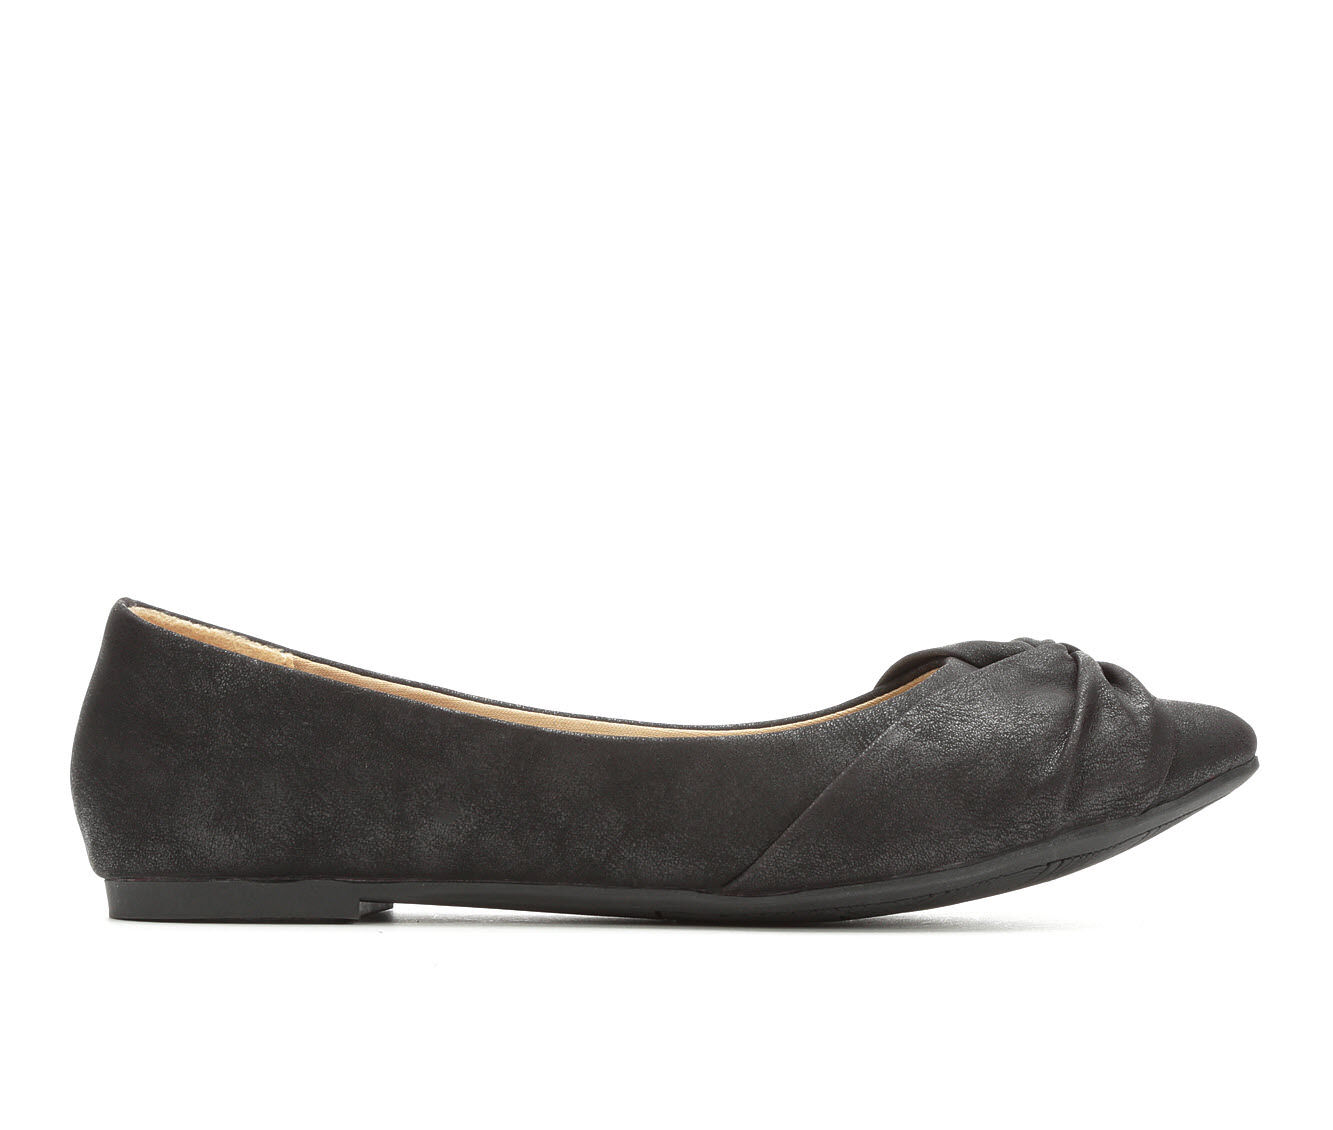 Women's Jellypop Jacquee Flats Black Distress